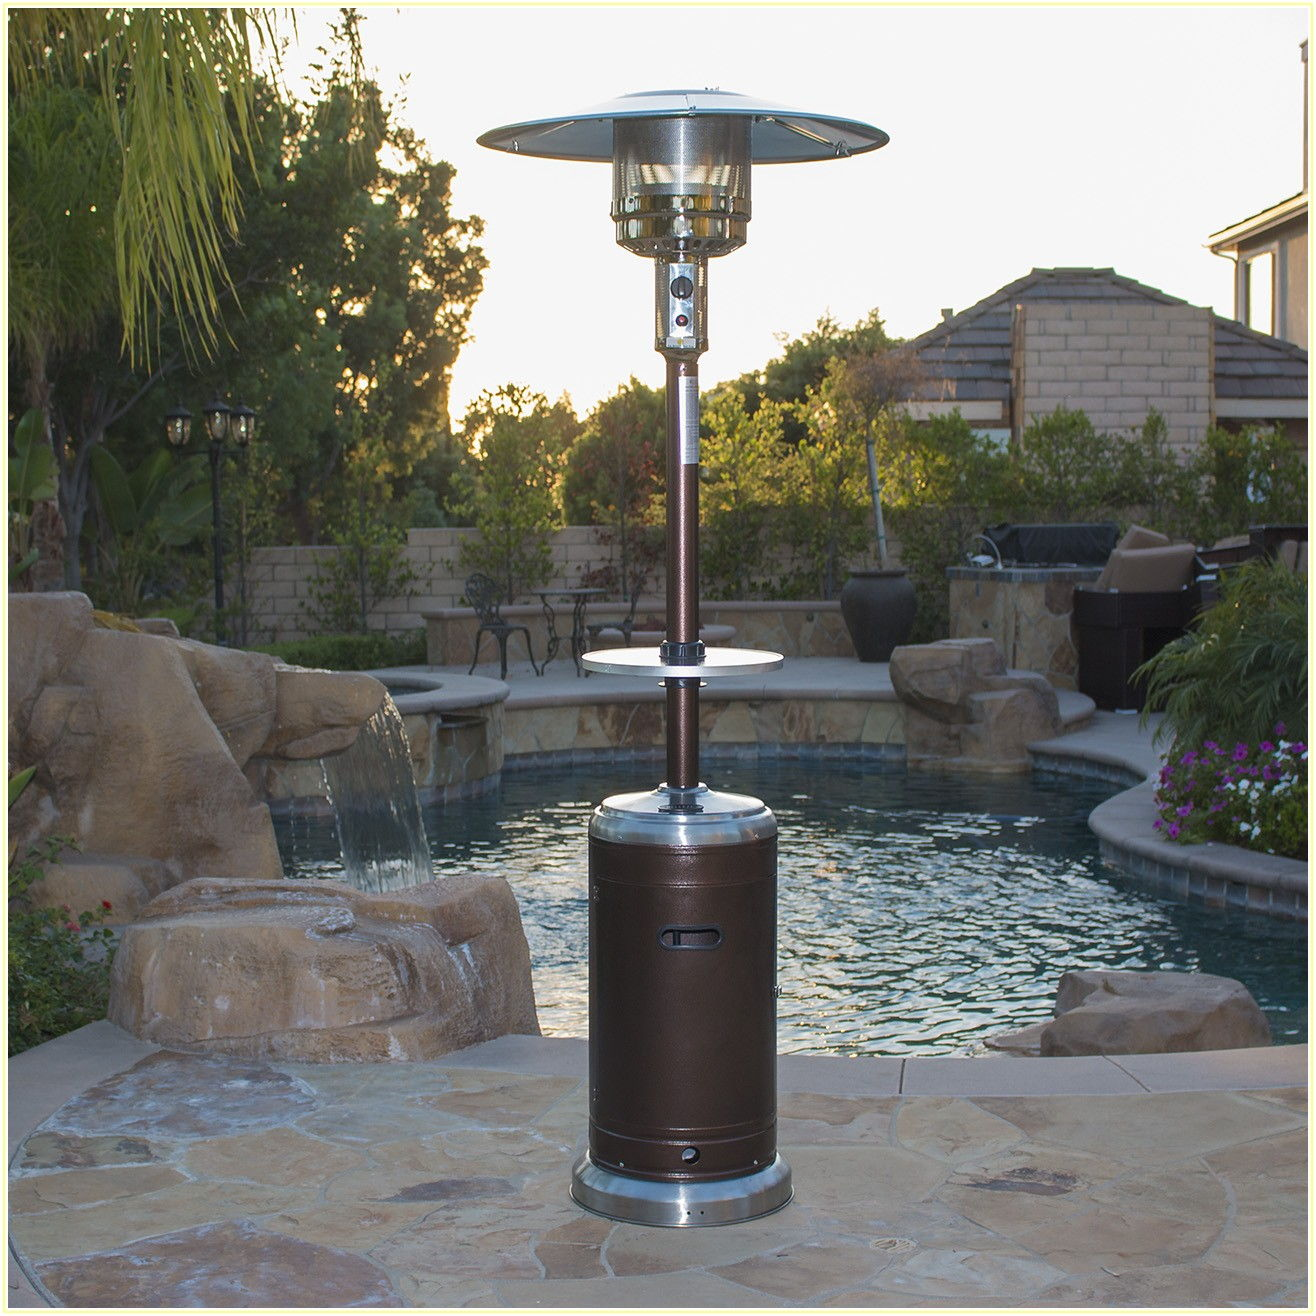 Home Depot Patio Table Heater